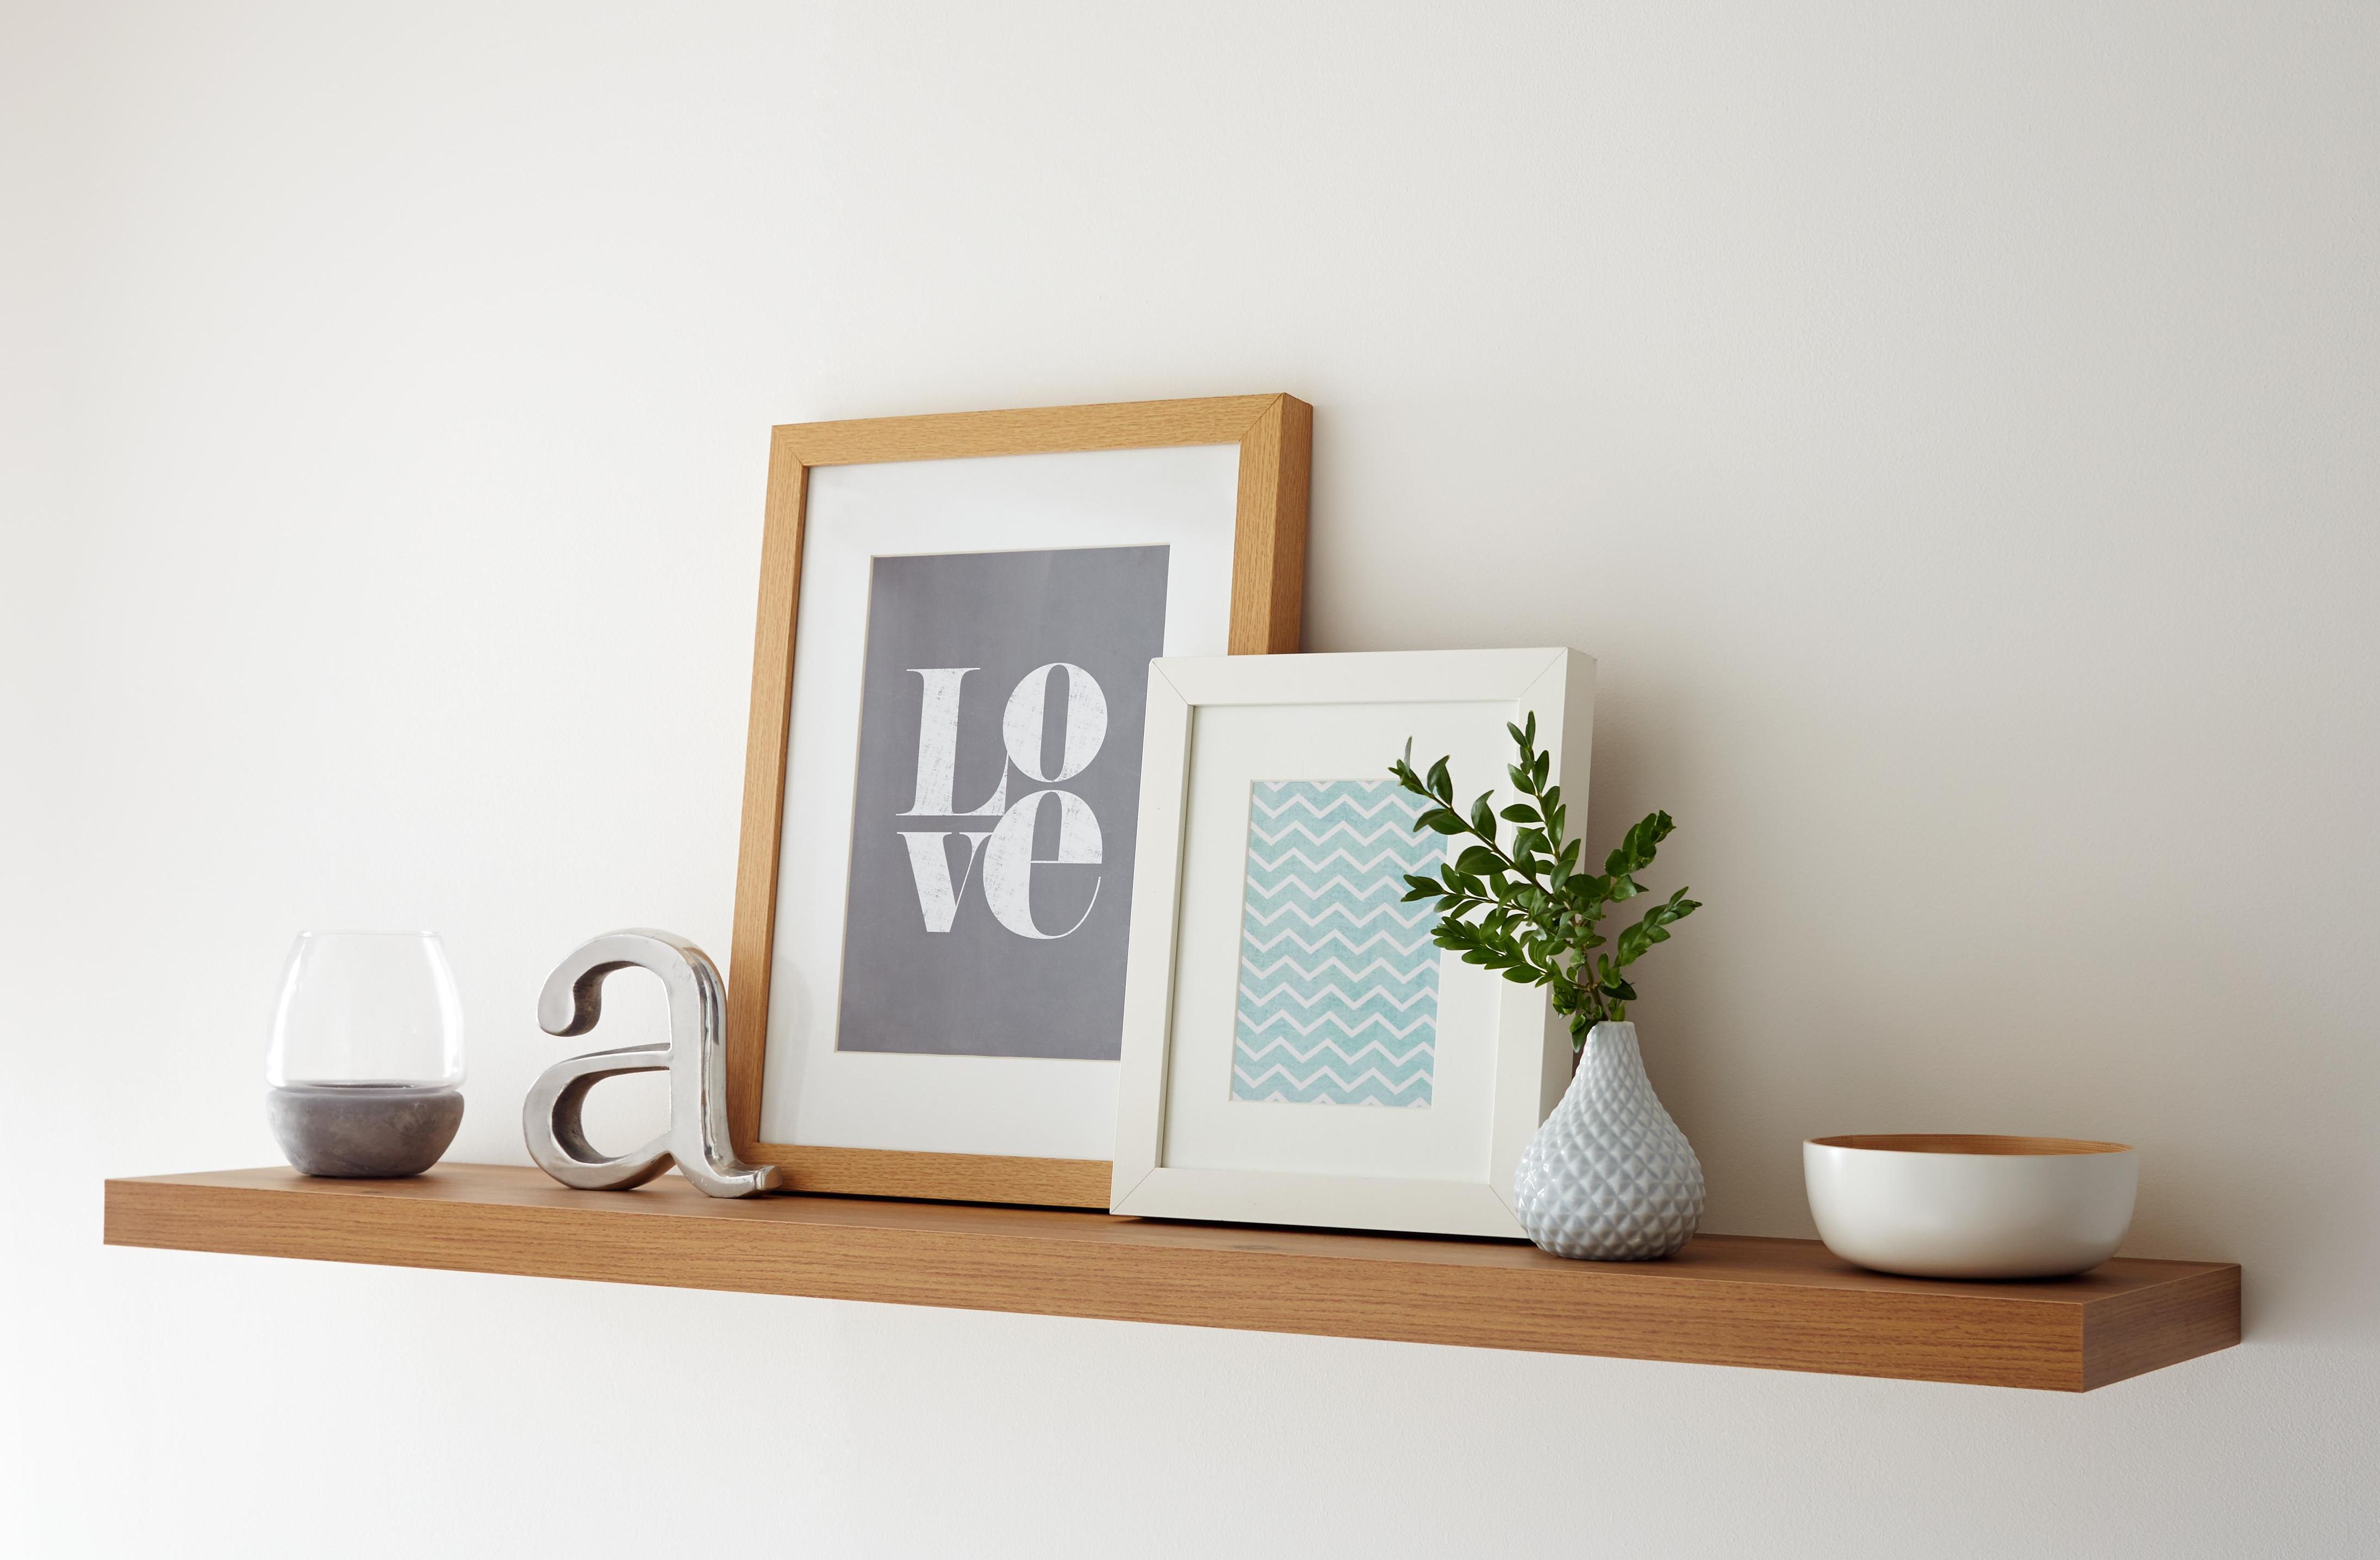 White wall with wooden shelf